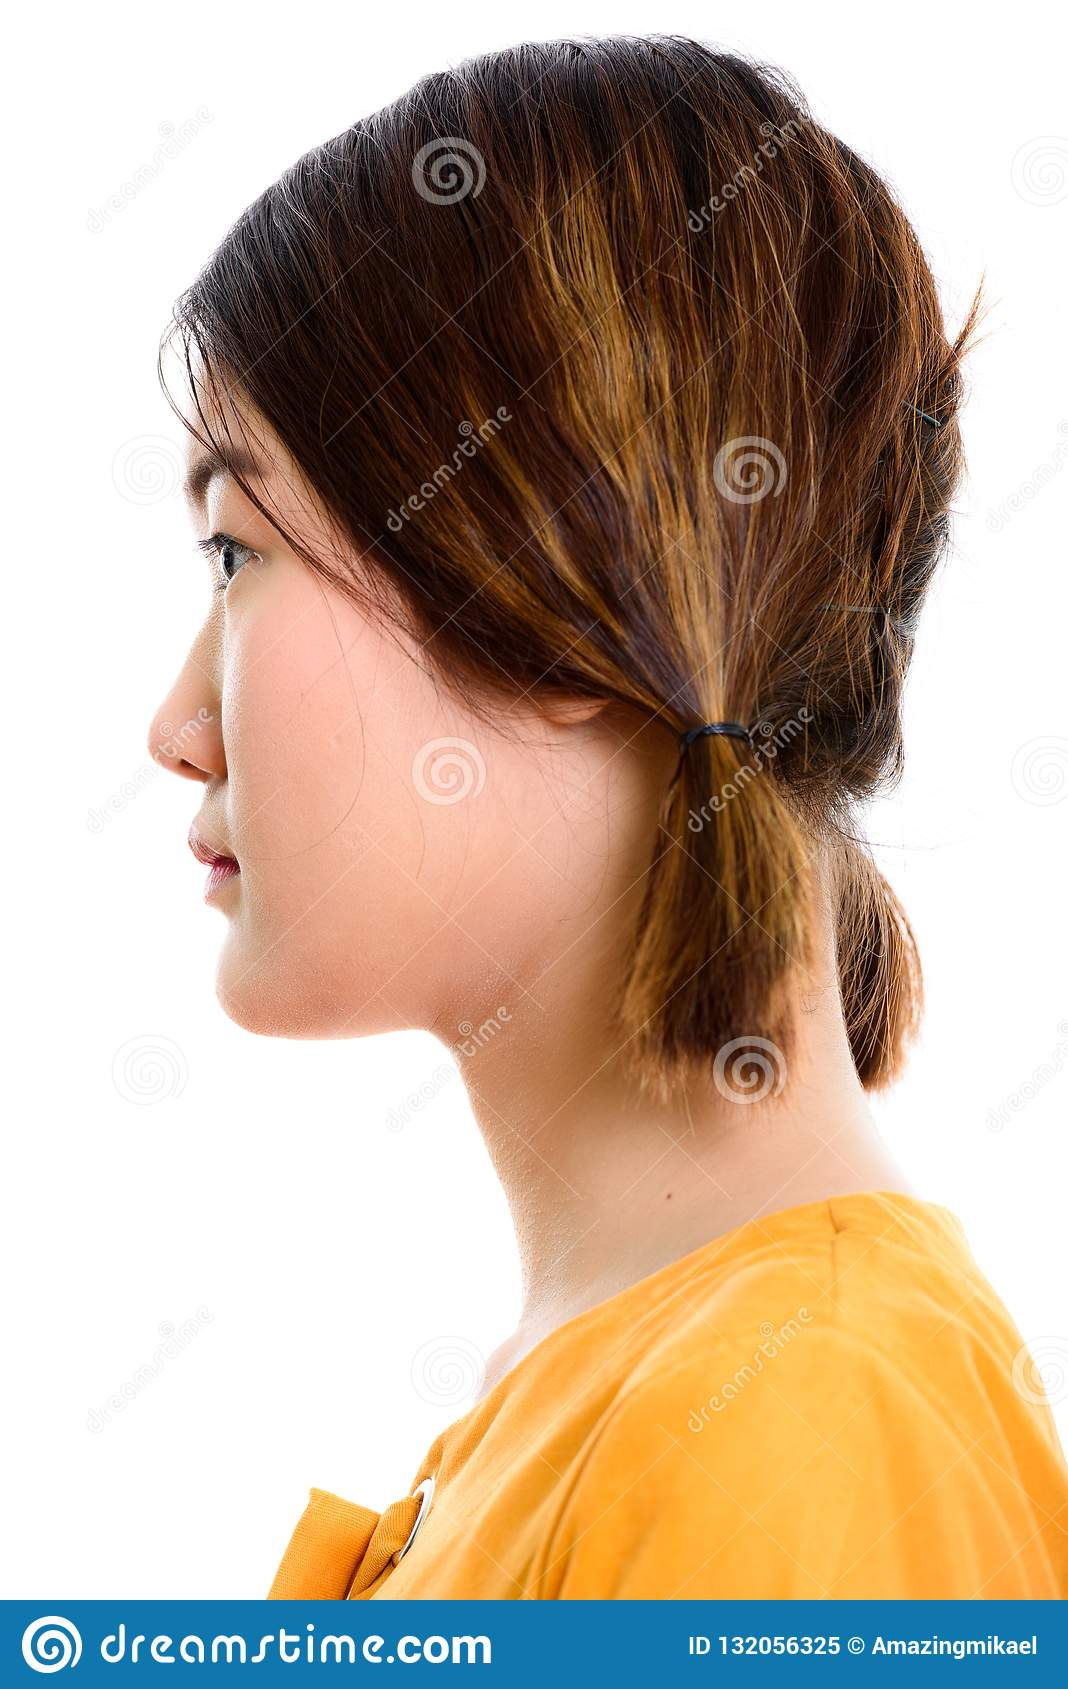 Asian Side View Stock Photos, Pictures & Royalty-Free